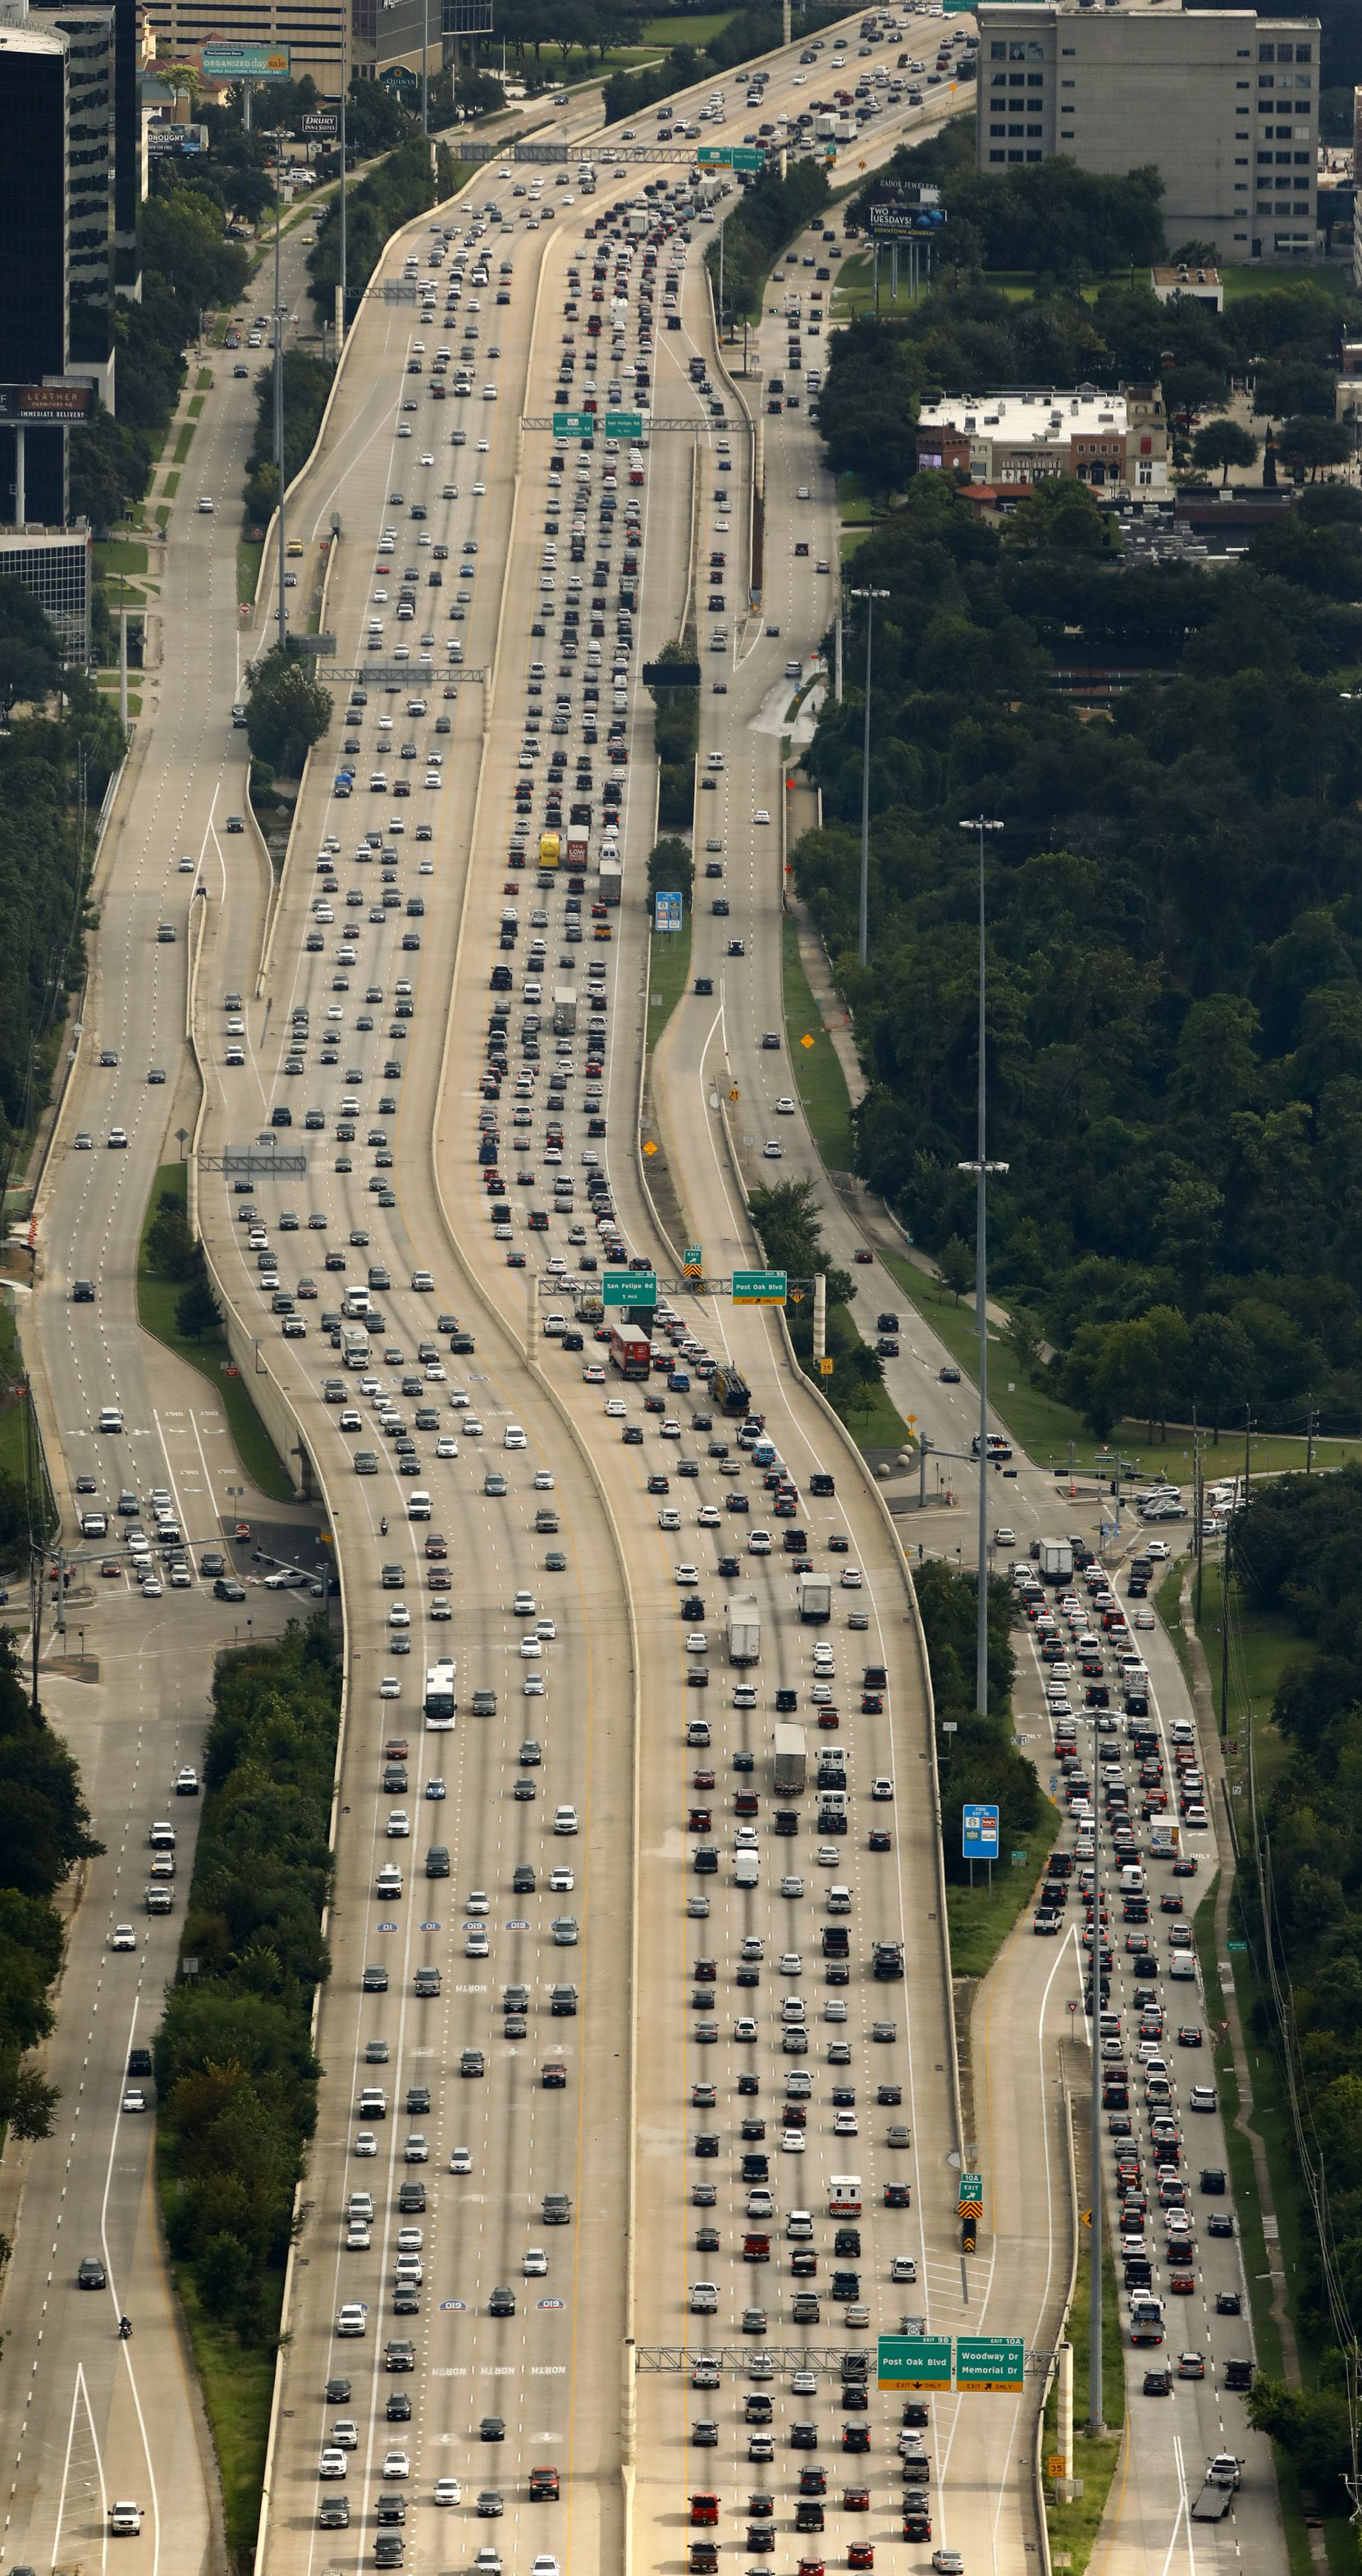 Southbound traffic on the 610 West Loop is backed up as folks got back on the roads in Houston, Texas, Wednesday, August 30, 2017.